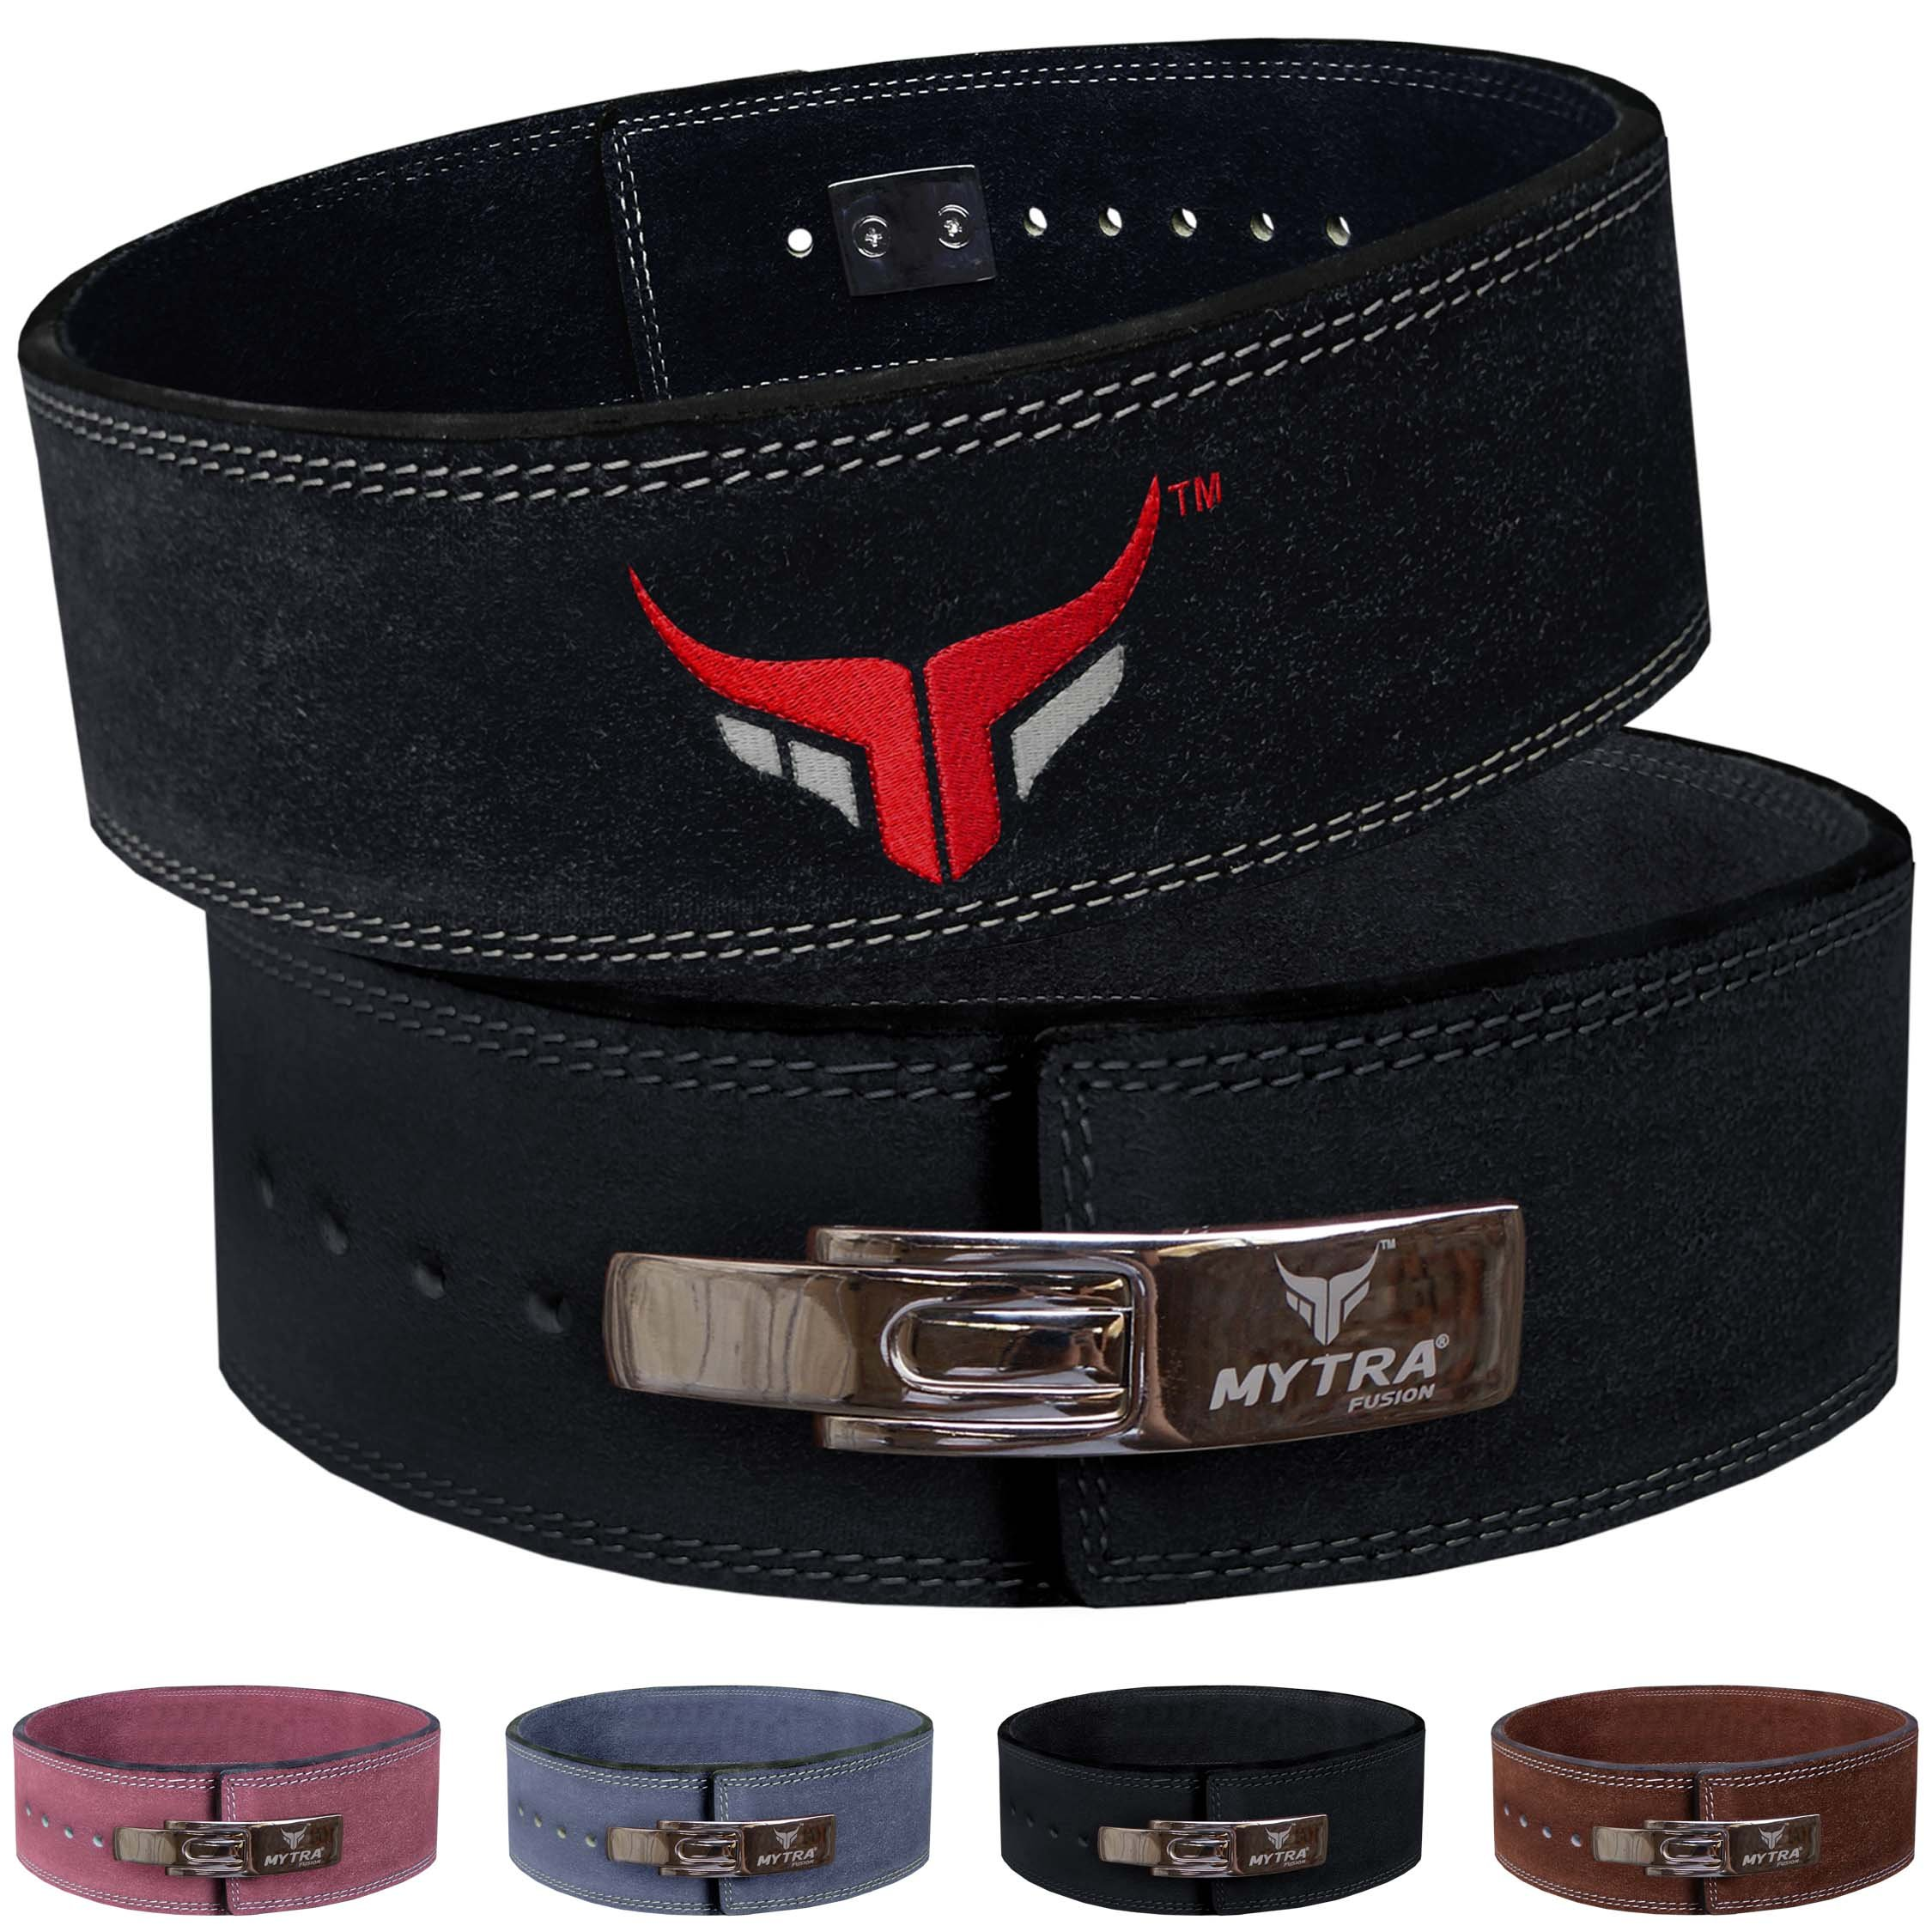 Mytra Fusion Leather Weight Lifting Power Lifting Back Support Belt Weight Lifting Belt Men Weight Lifting Belt Women Weightlifting Belt (Small, Black)